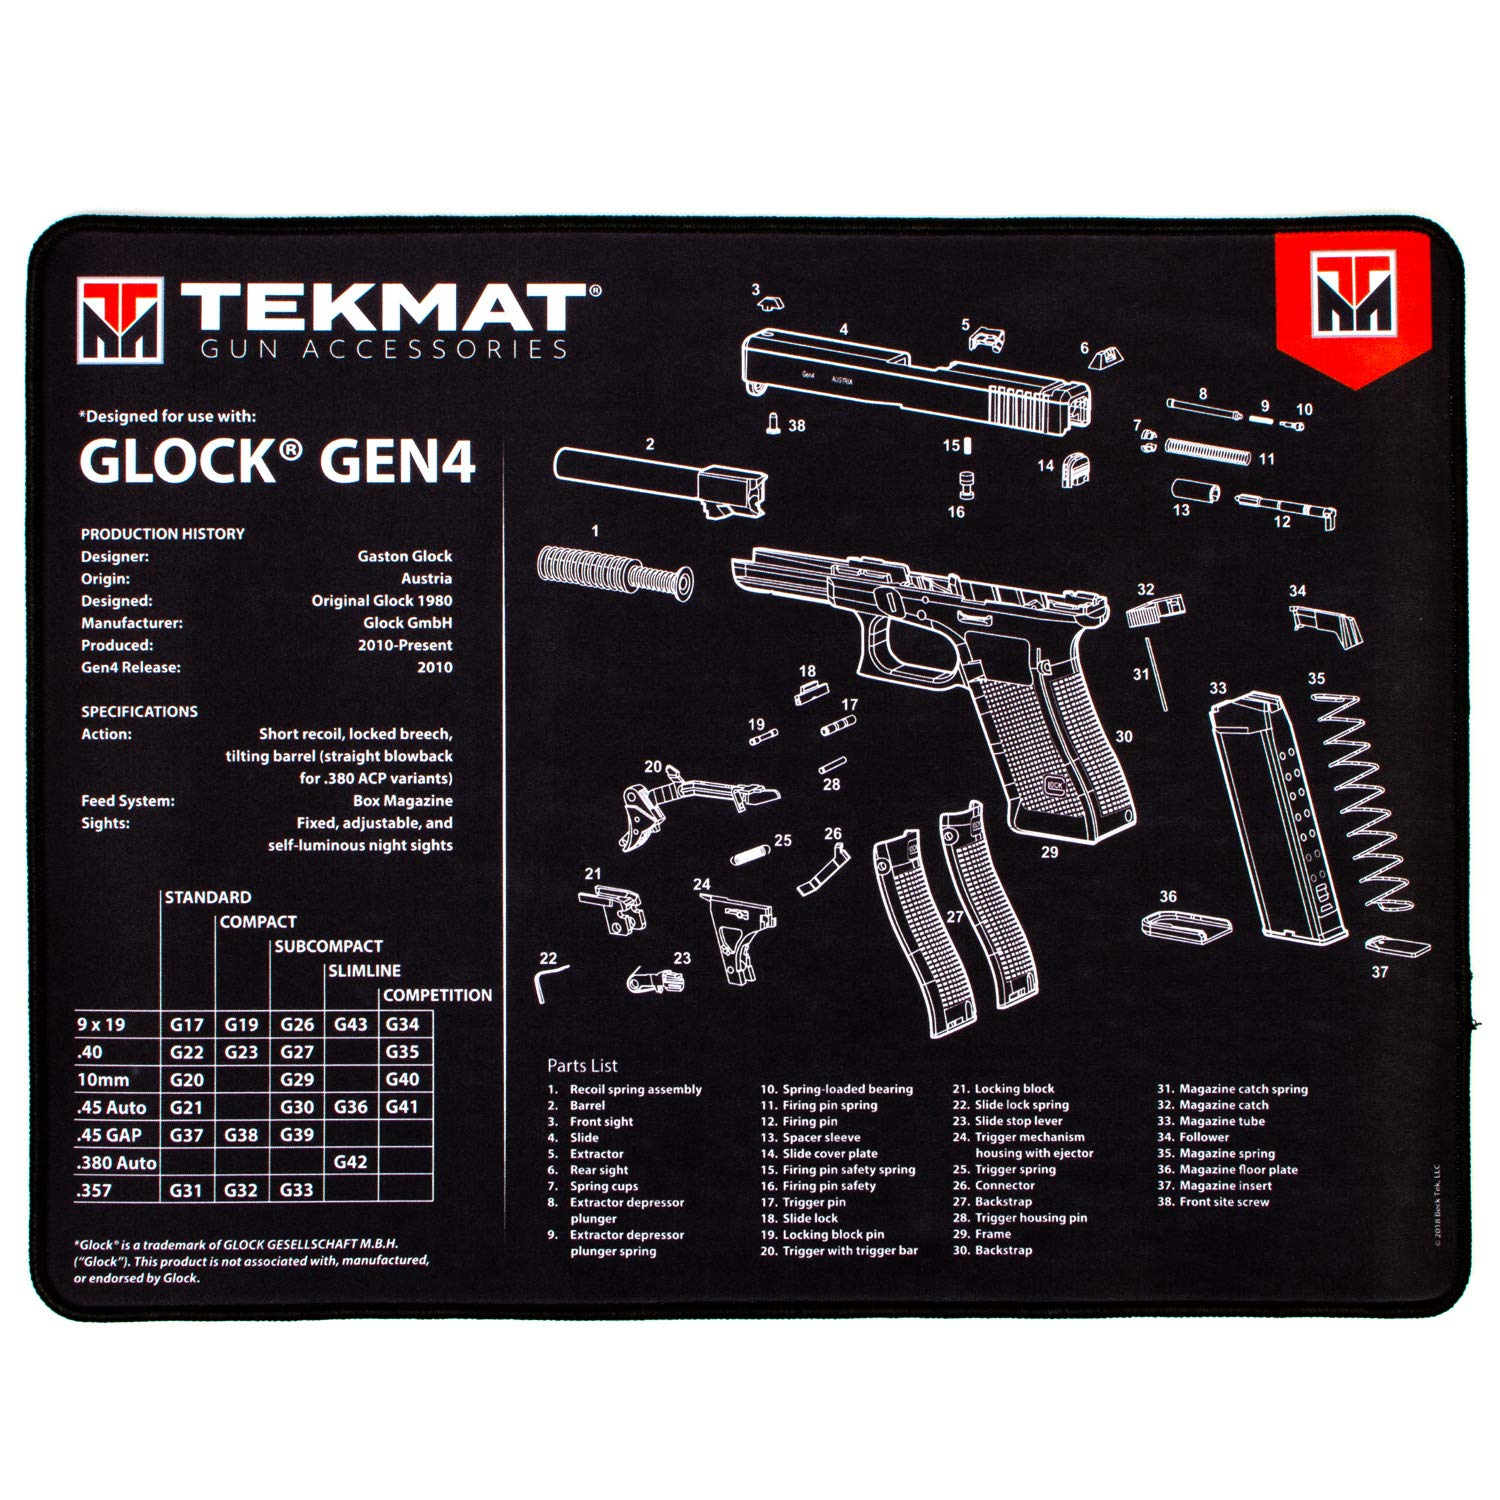 TekMat Ultra Cleaning Mat for use with Glock Gen 4 by TekMat